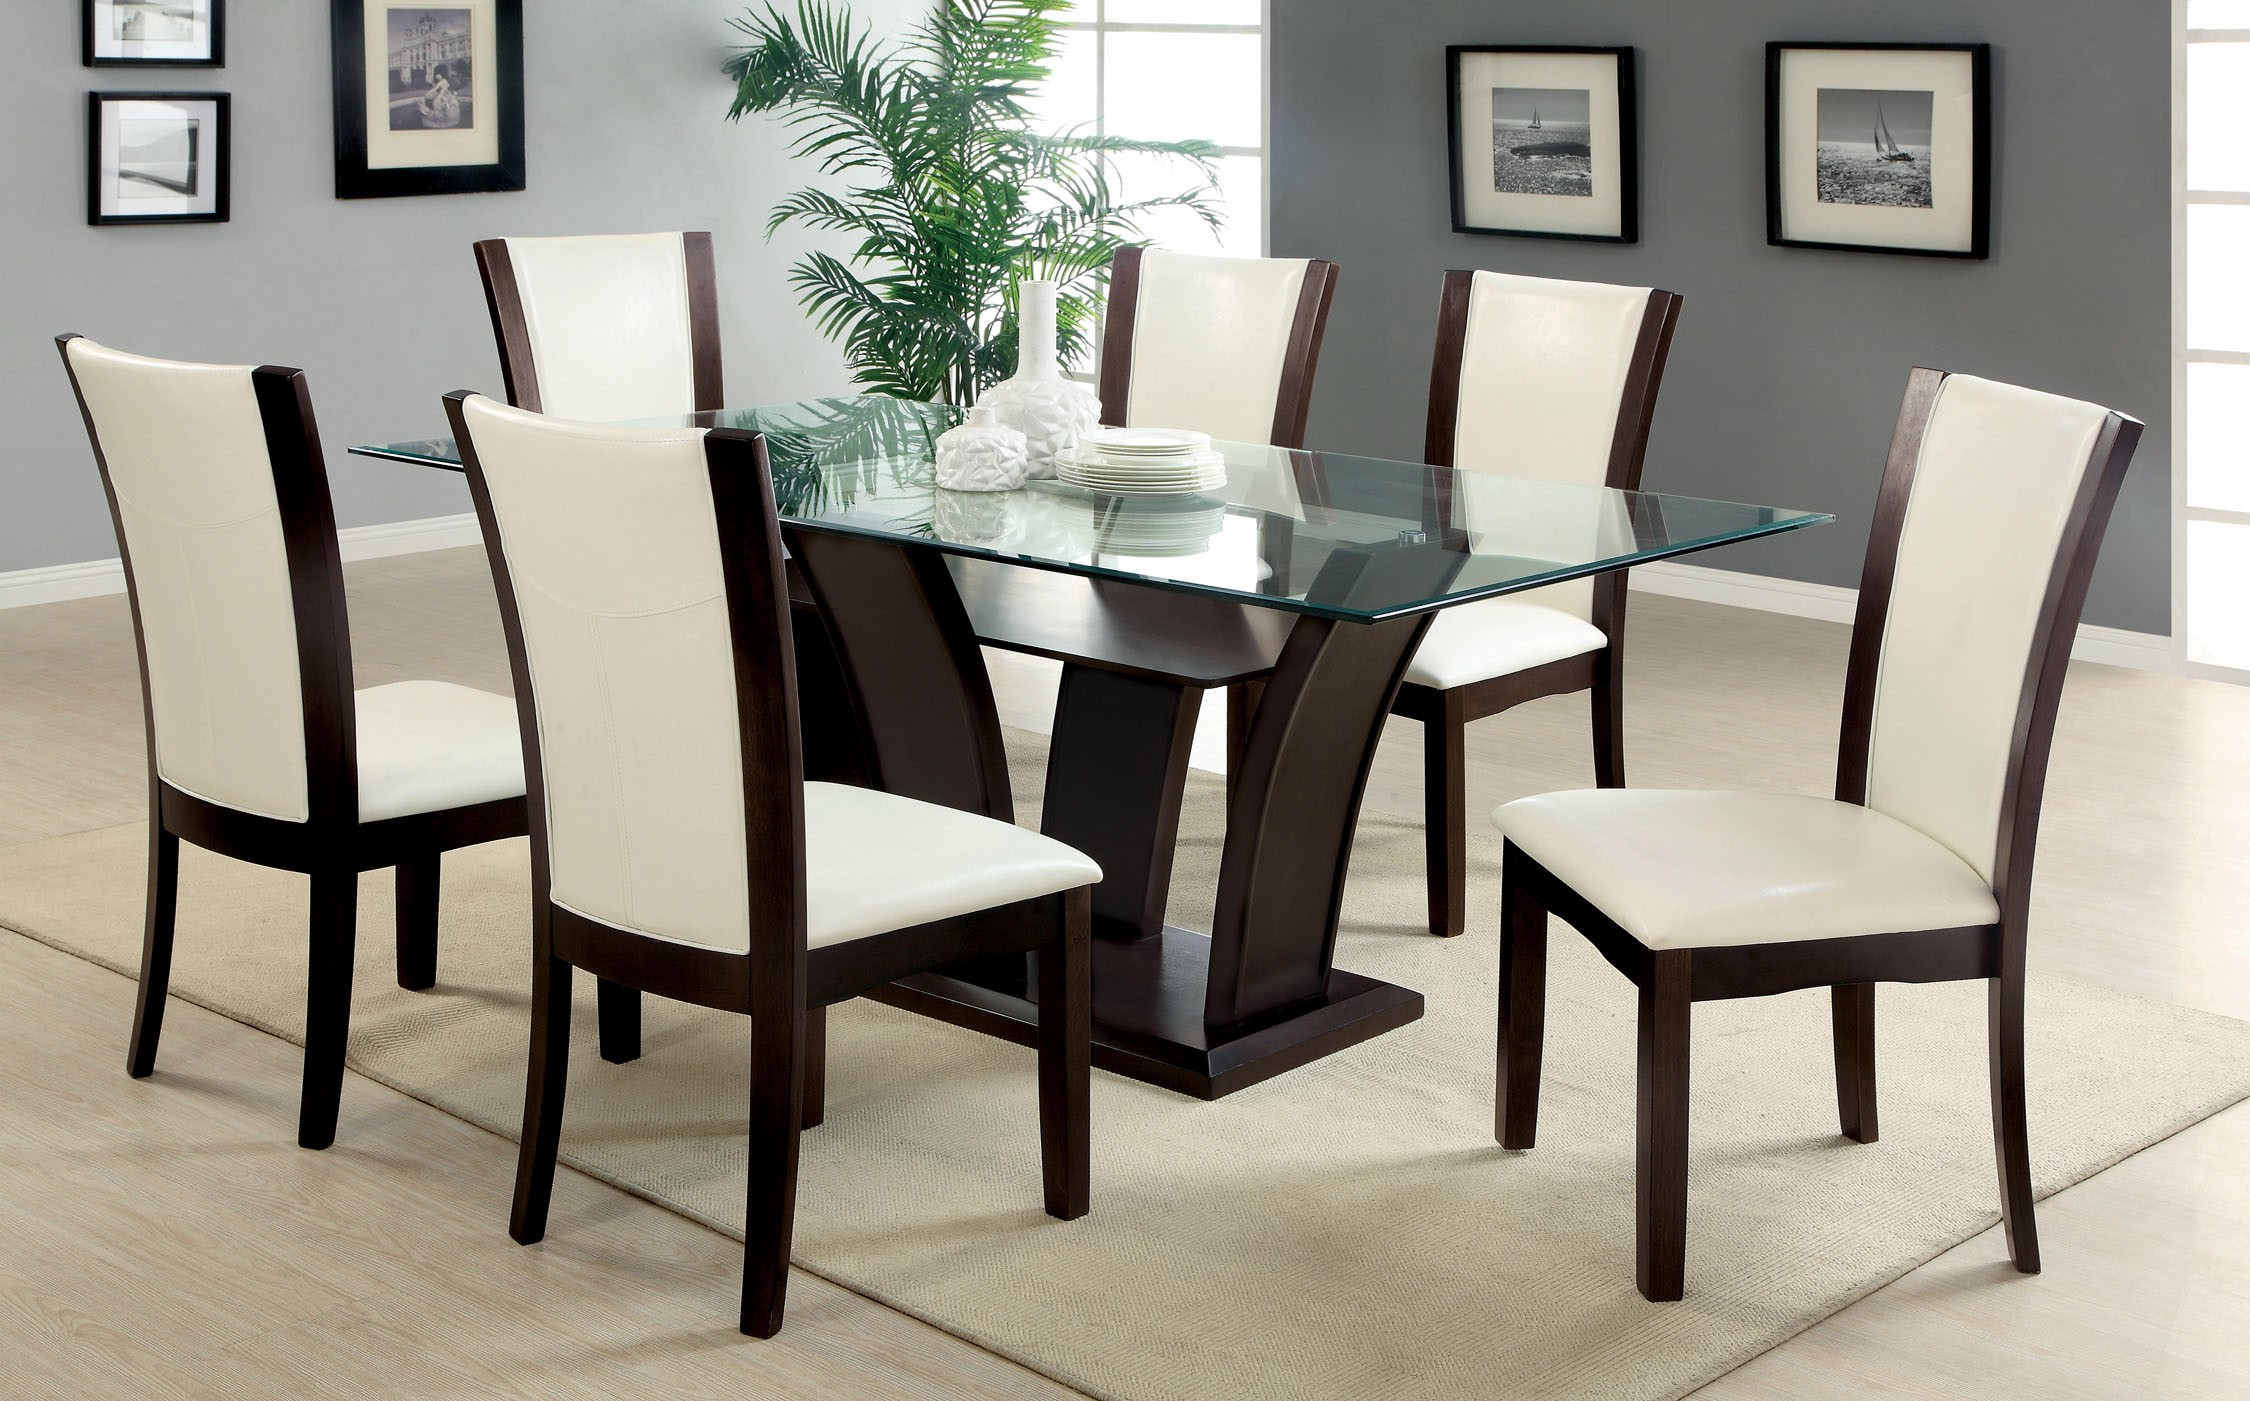 Majestic glass dining table and chairs full size of ... vzfzqtj